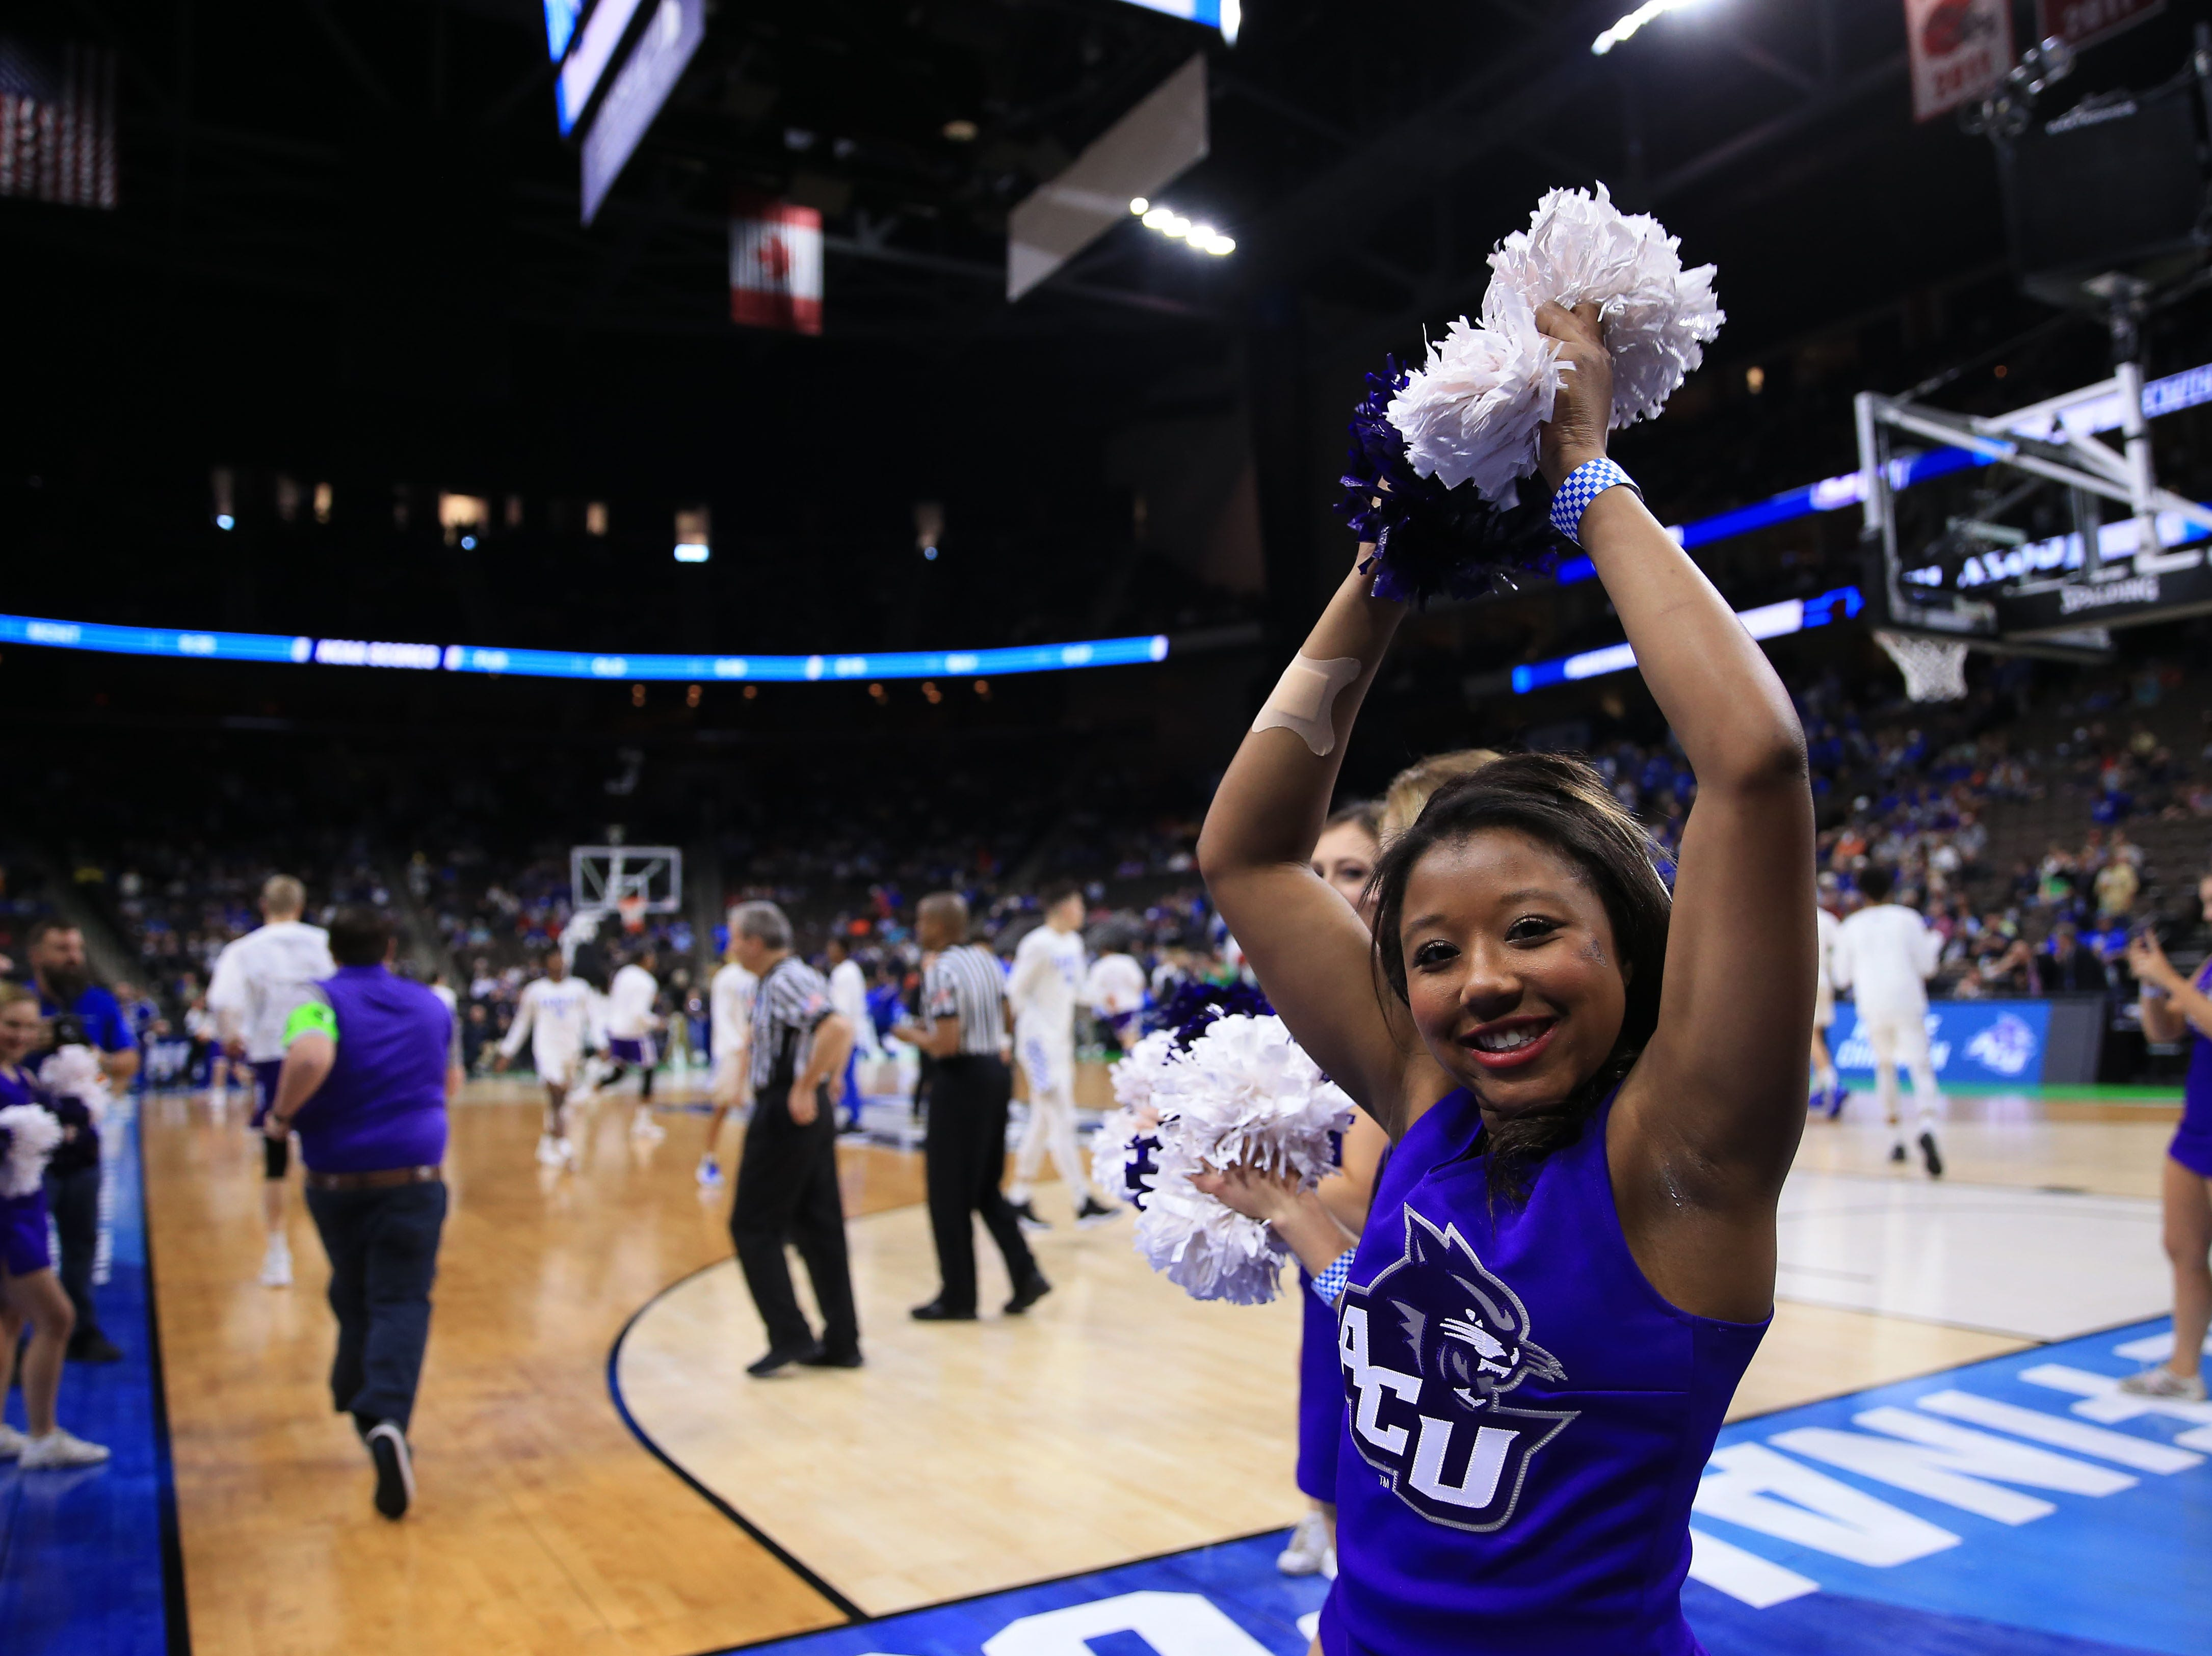 Mar 21, 2019; Jacksonville, FL, USA; The Abilene Christian Wildcats cheerleaders look on from the court prior to the first round of the 2019 NCAA Tournament against the Kentucky Wildcats at Jacksonville Veterans Memorial Arena. Mandatory Credit: Matt Stamey-USA TODAY Sports